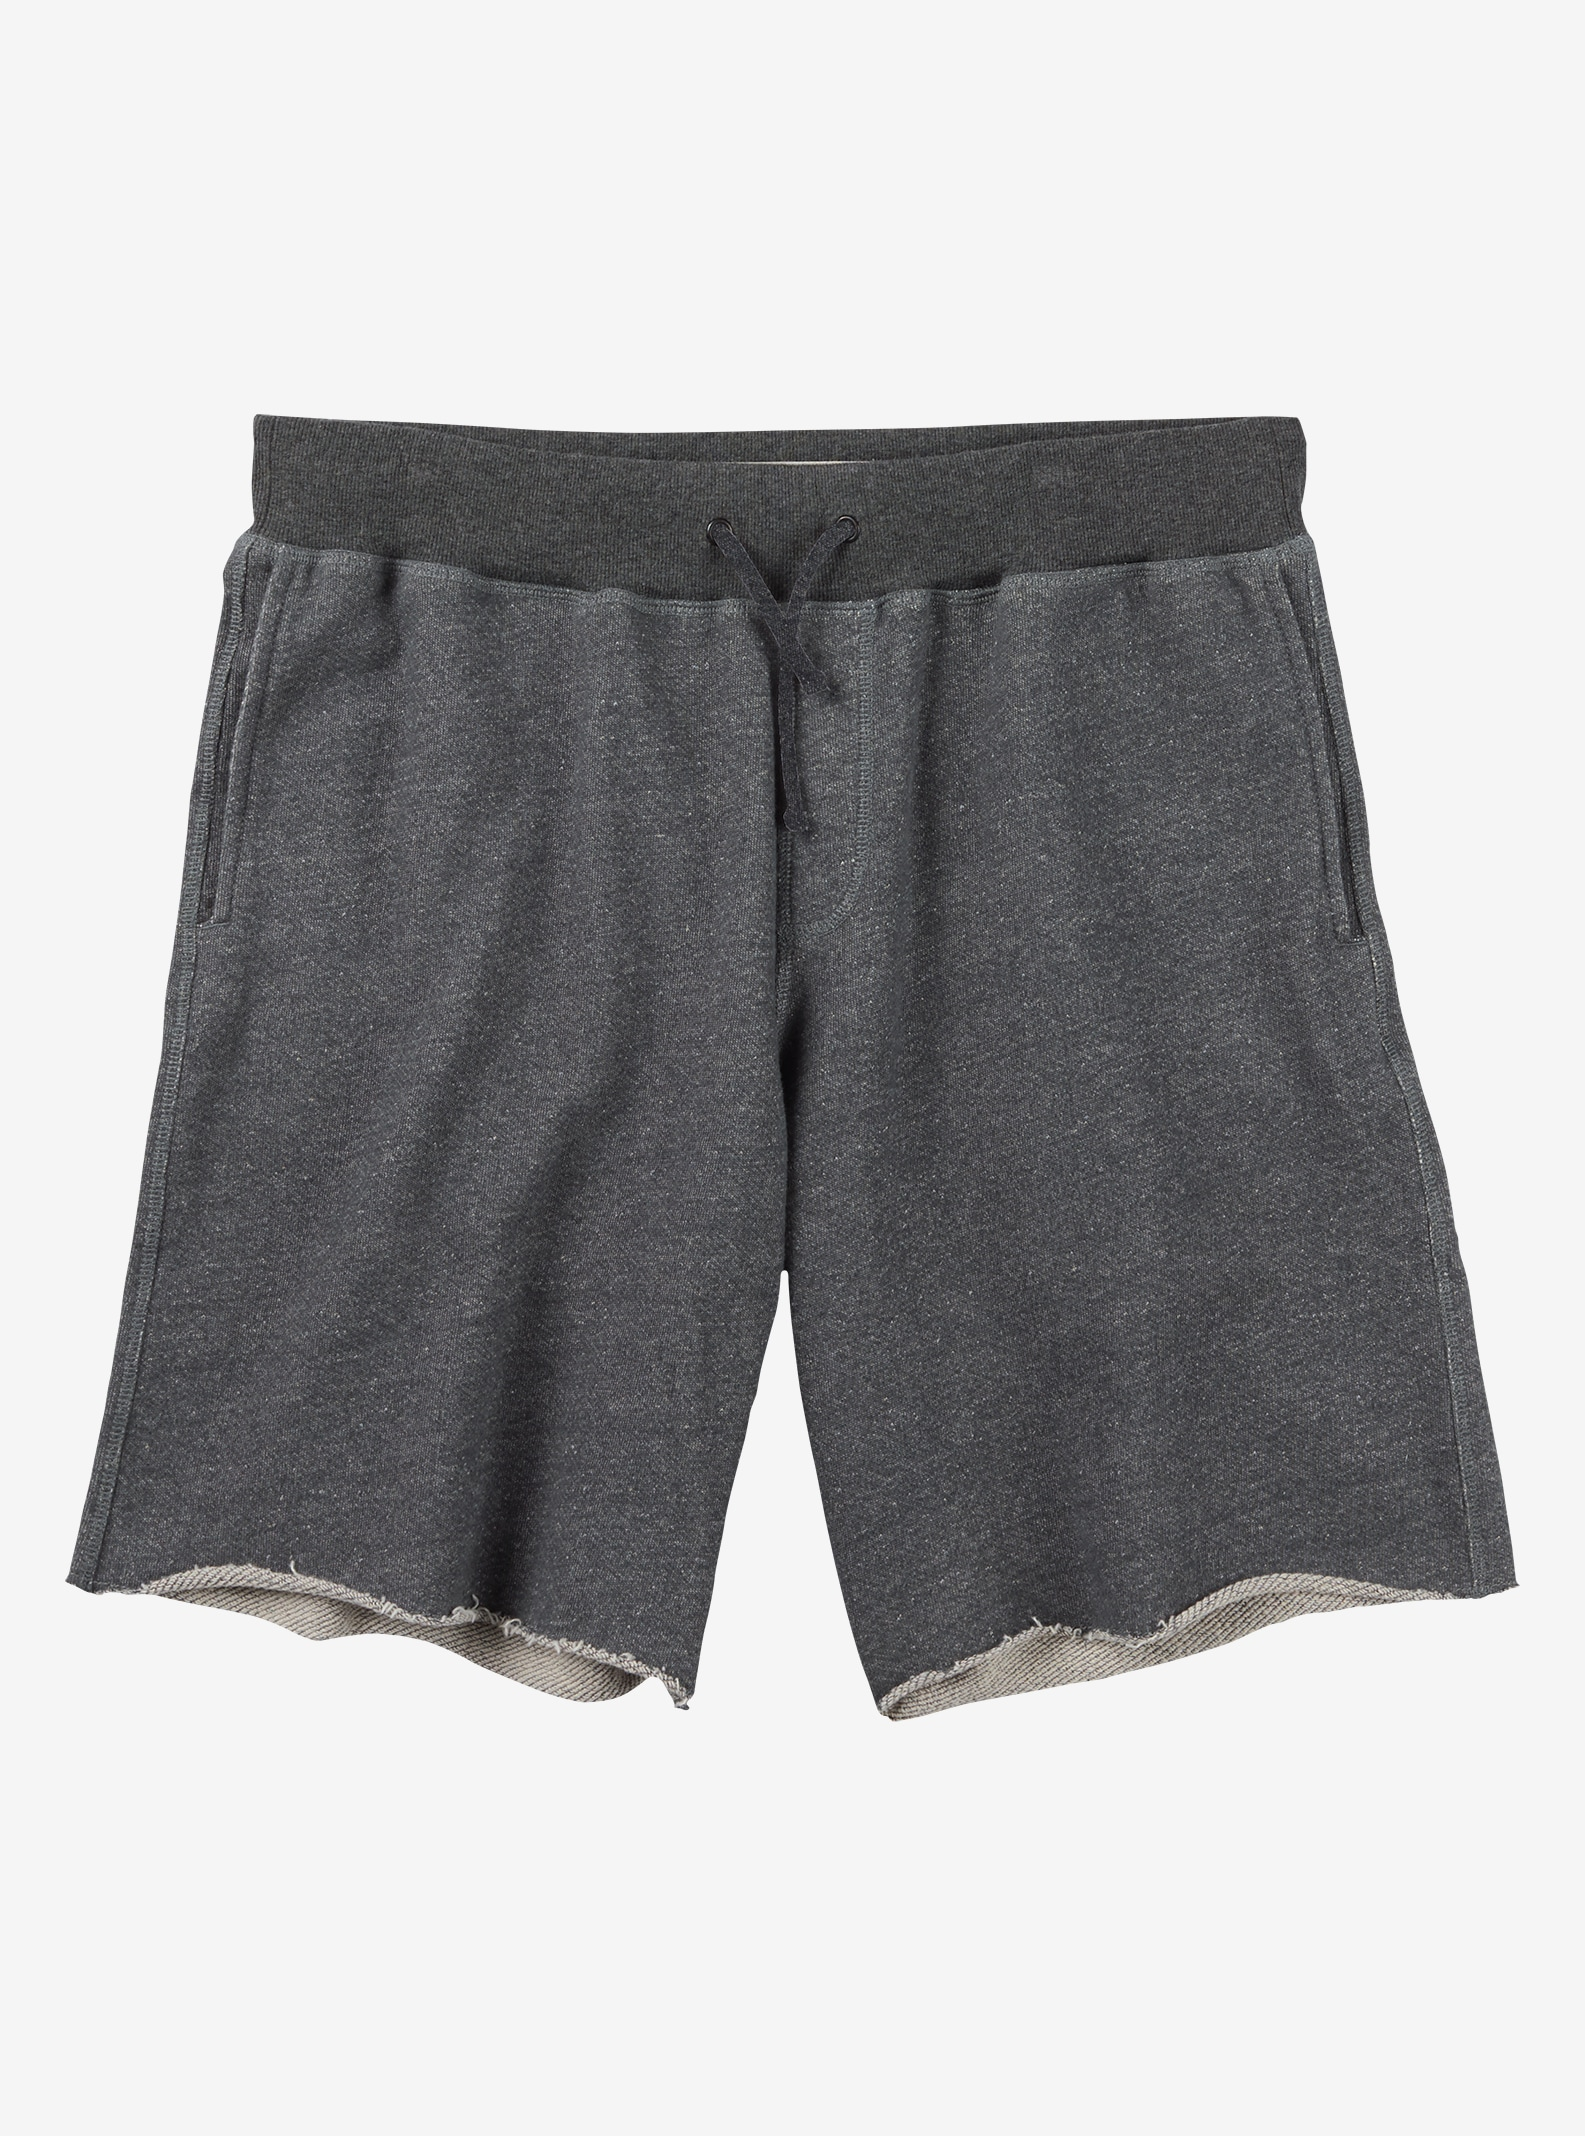 Burton Baja Short shown in Monument Heather